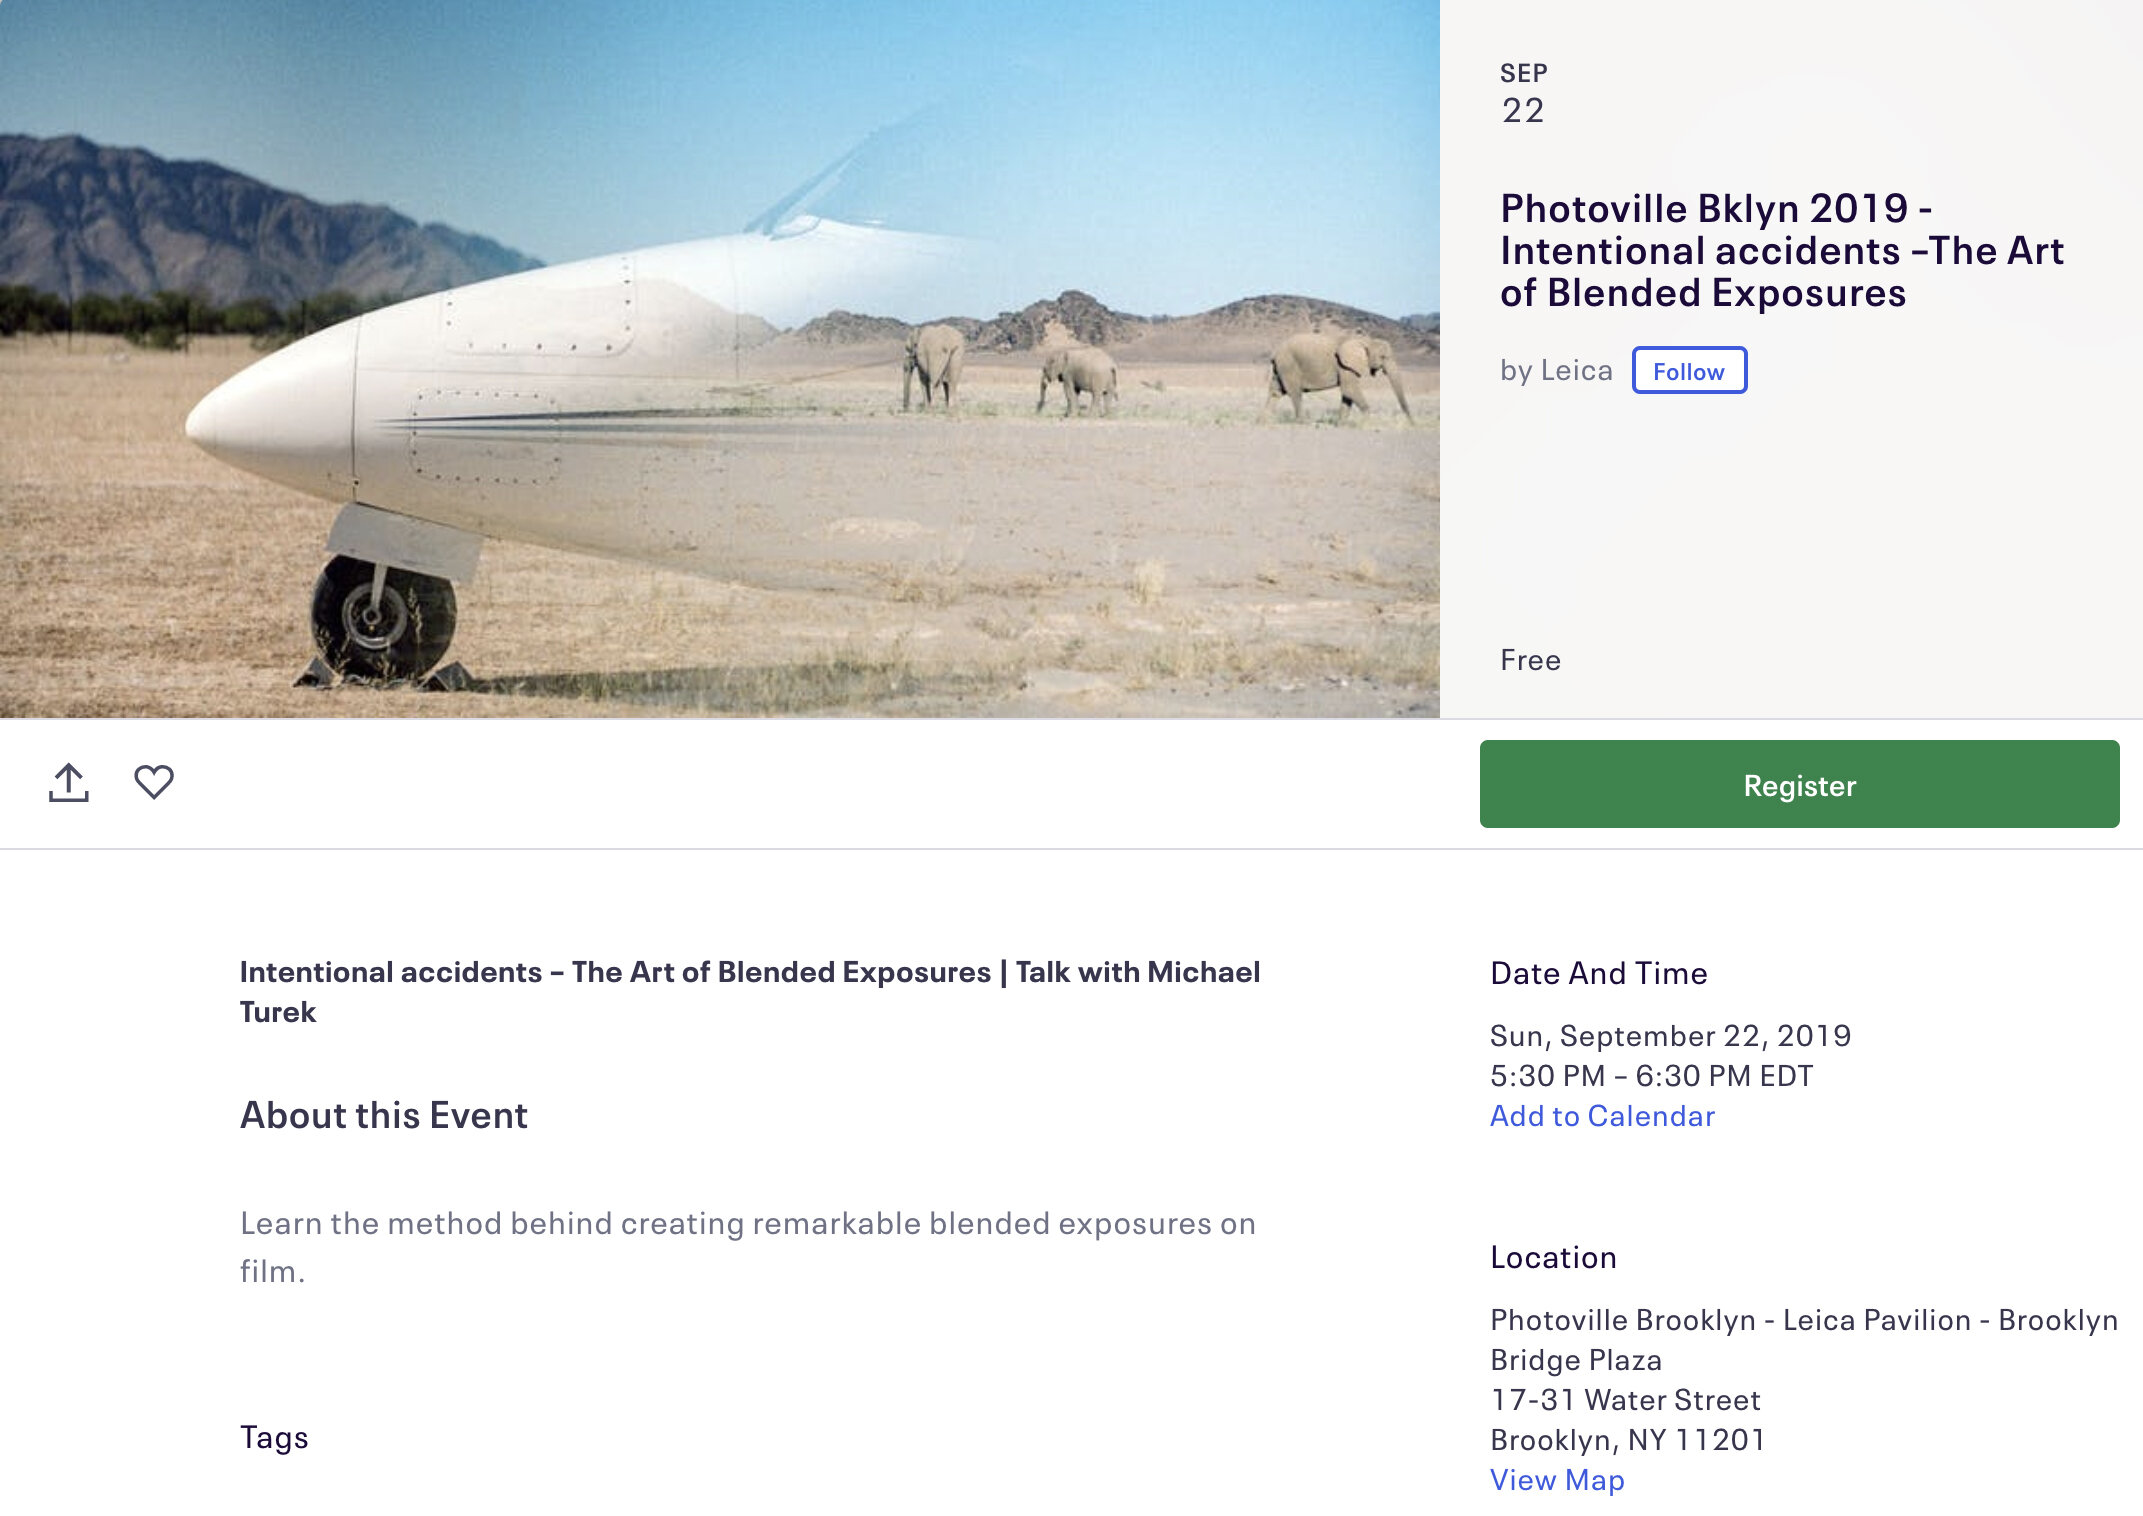 / Sept 22 2019 /   I'm speaking at Photoville Brooklyn about my Blended Exposures at the Leica Pavilion, 5:30pm, free